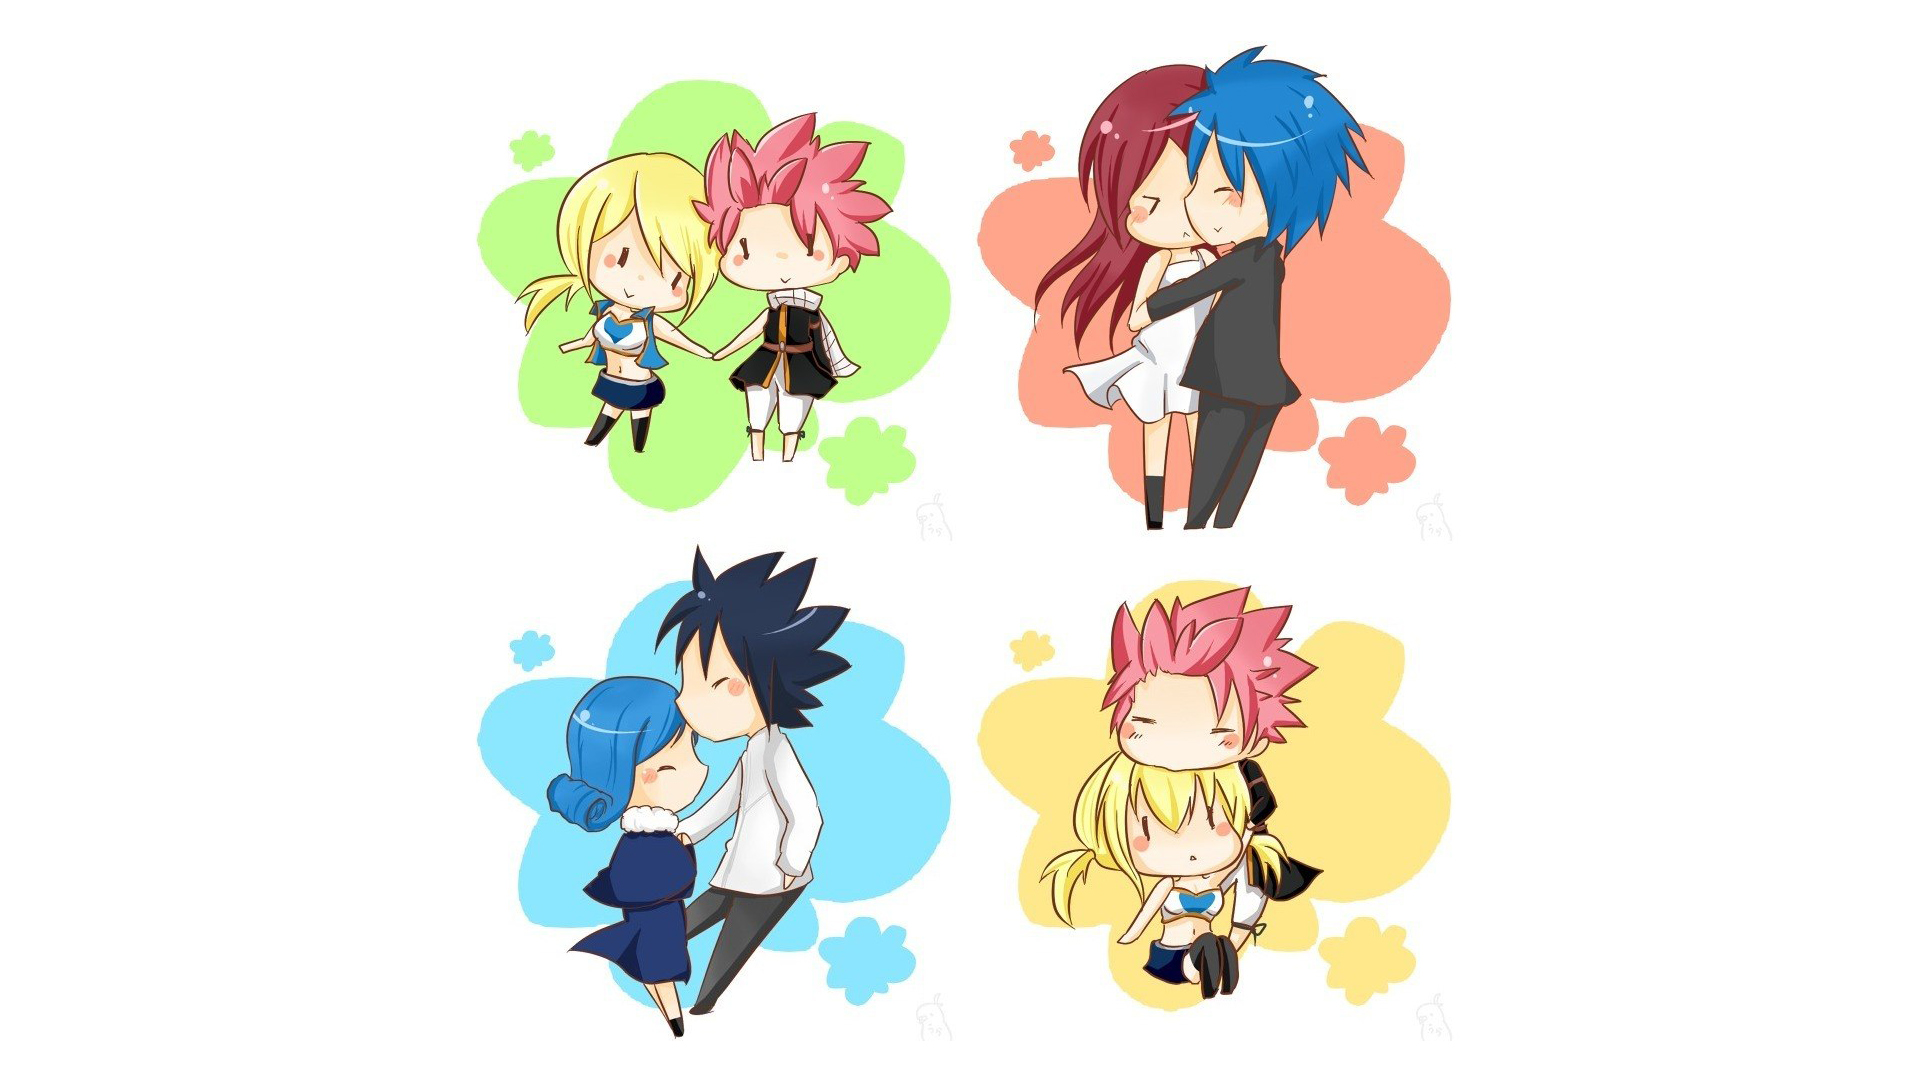 chibi lucy heartfilia and natsu dragneel erza scarlet and jellal 1920x1080